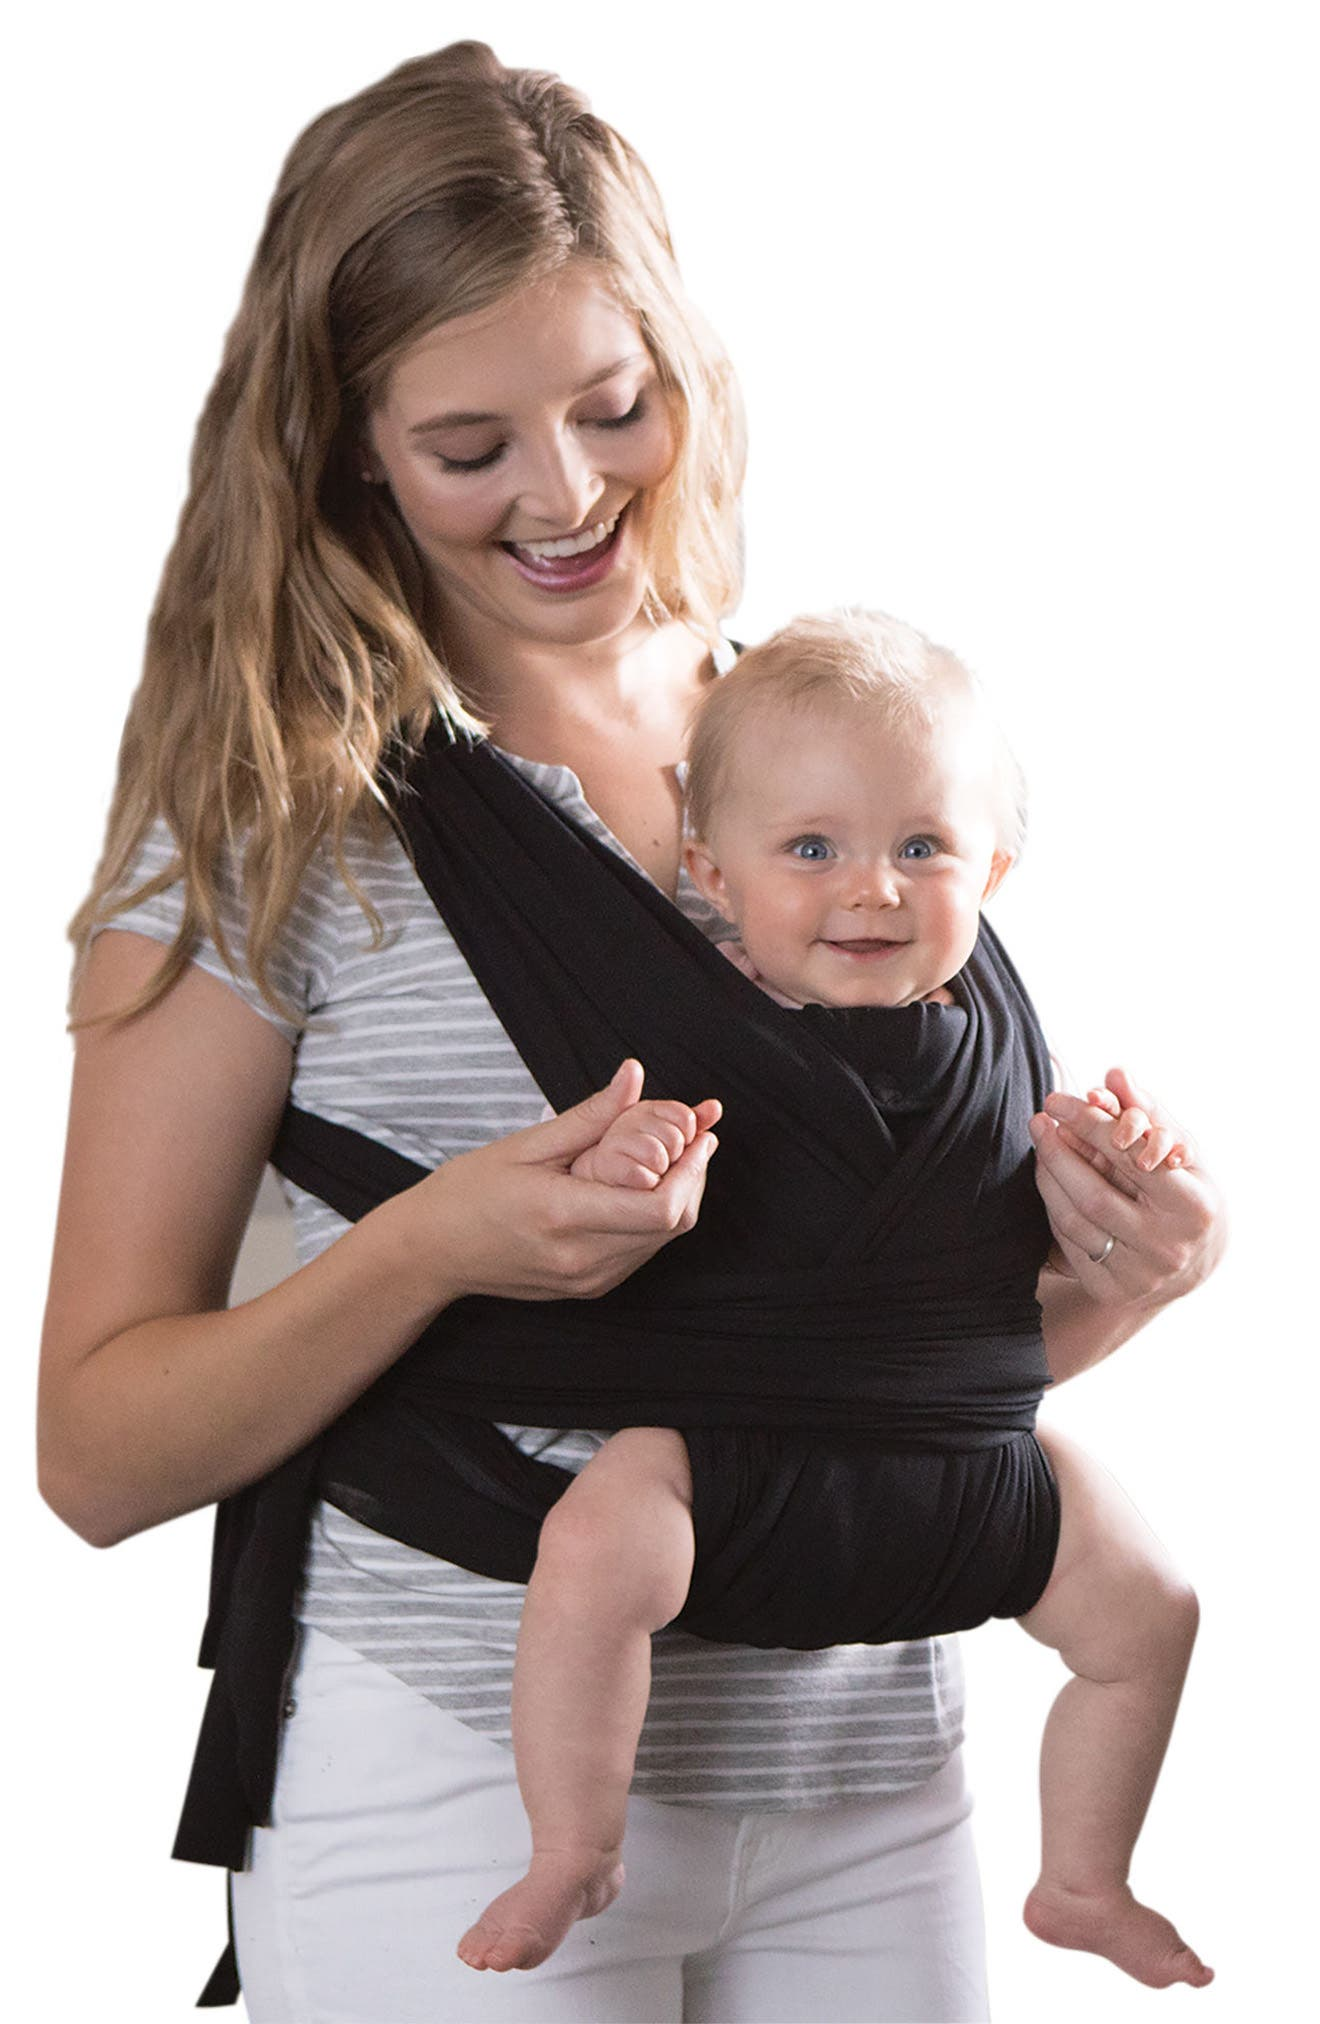 Alternate Image 1 Selected - Boppy ComfyFit Baby Carrier